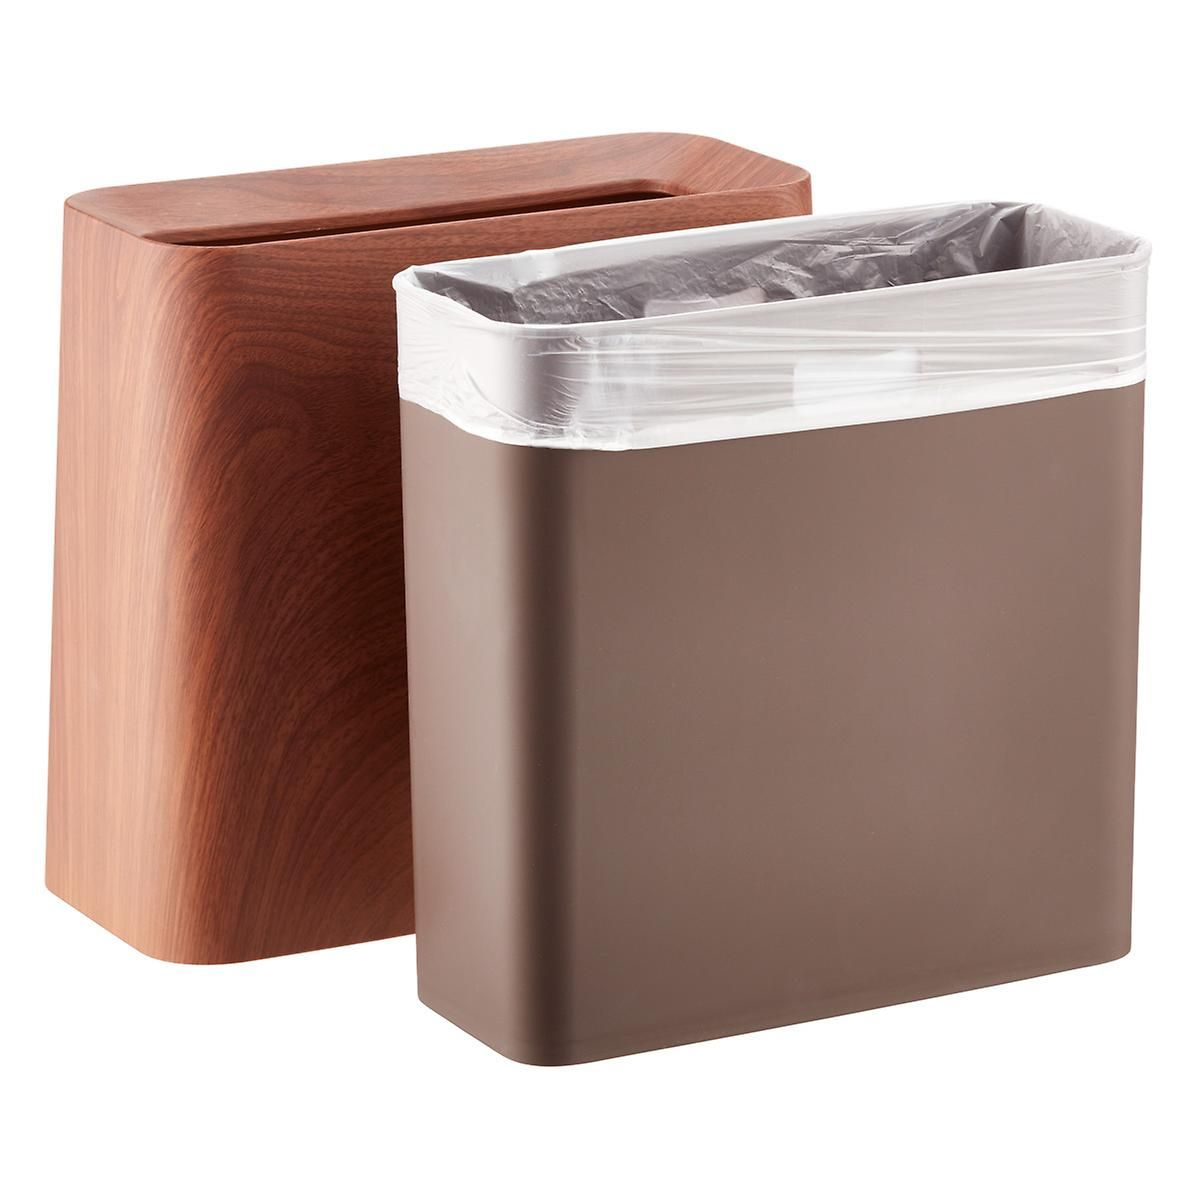 Created By Japanese Designers This Sleek Trash Can Keeps Its